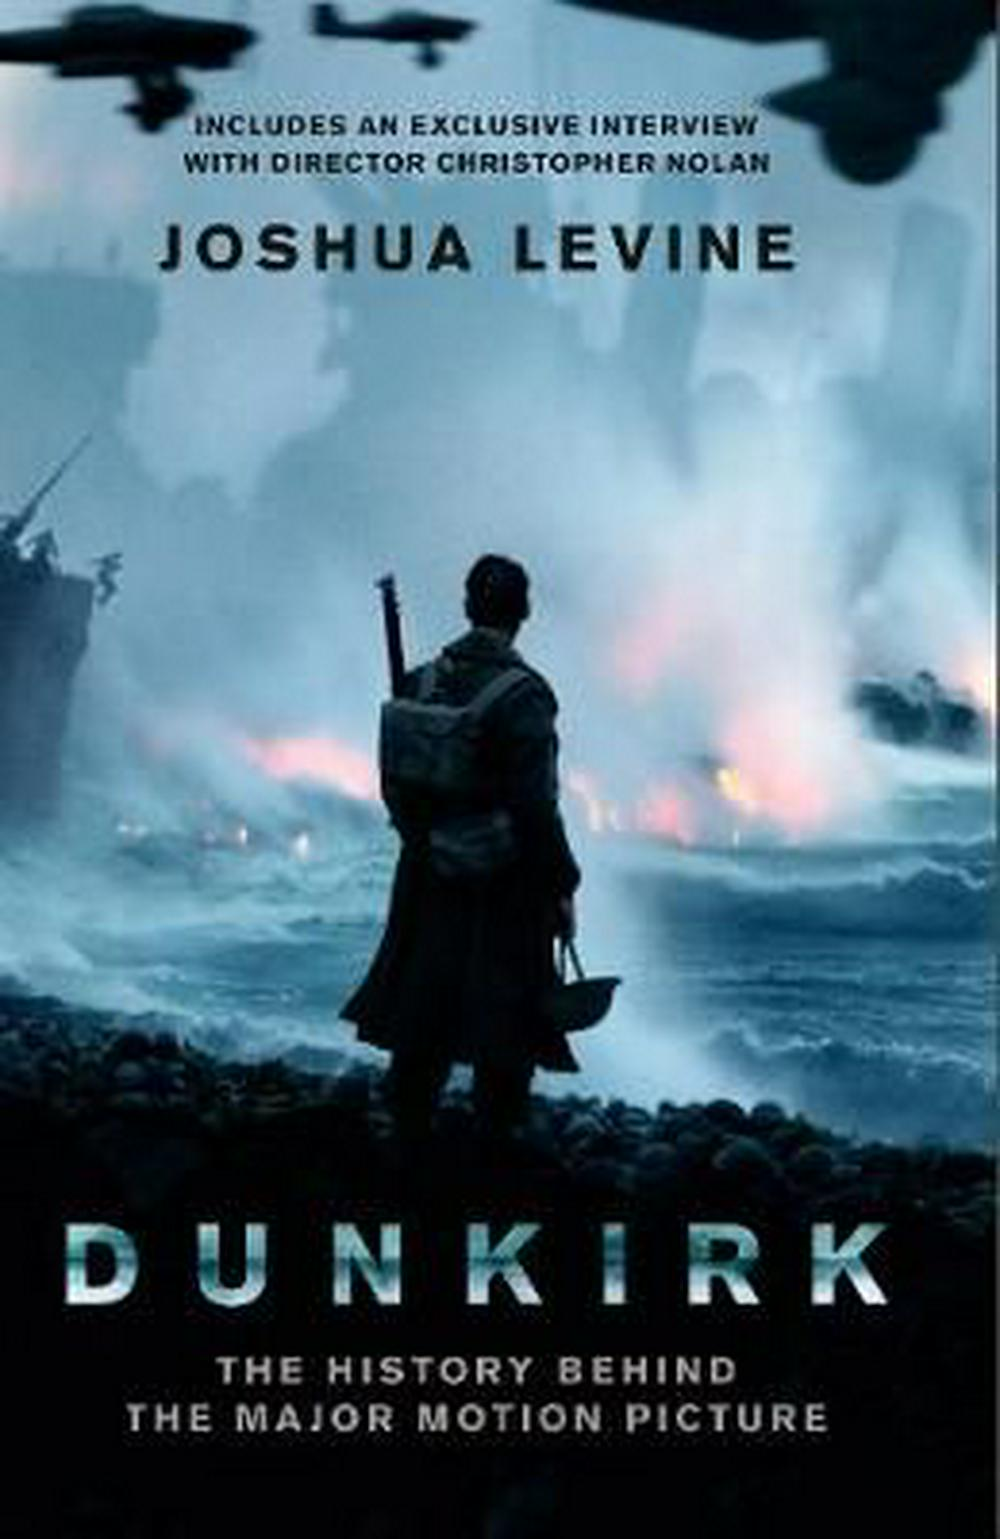 Dunkirk [Film Tie-in Edition] by Joshua Levine, ISBN: 9780008258931